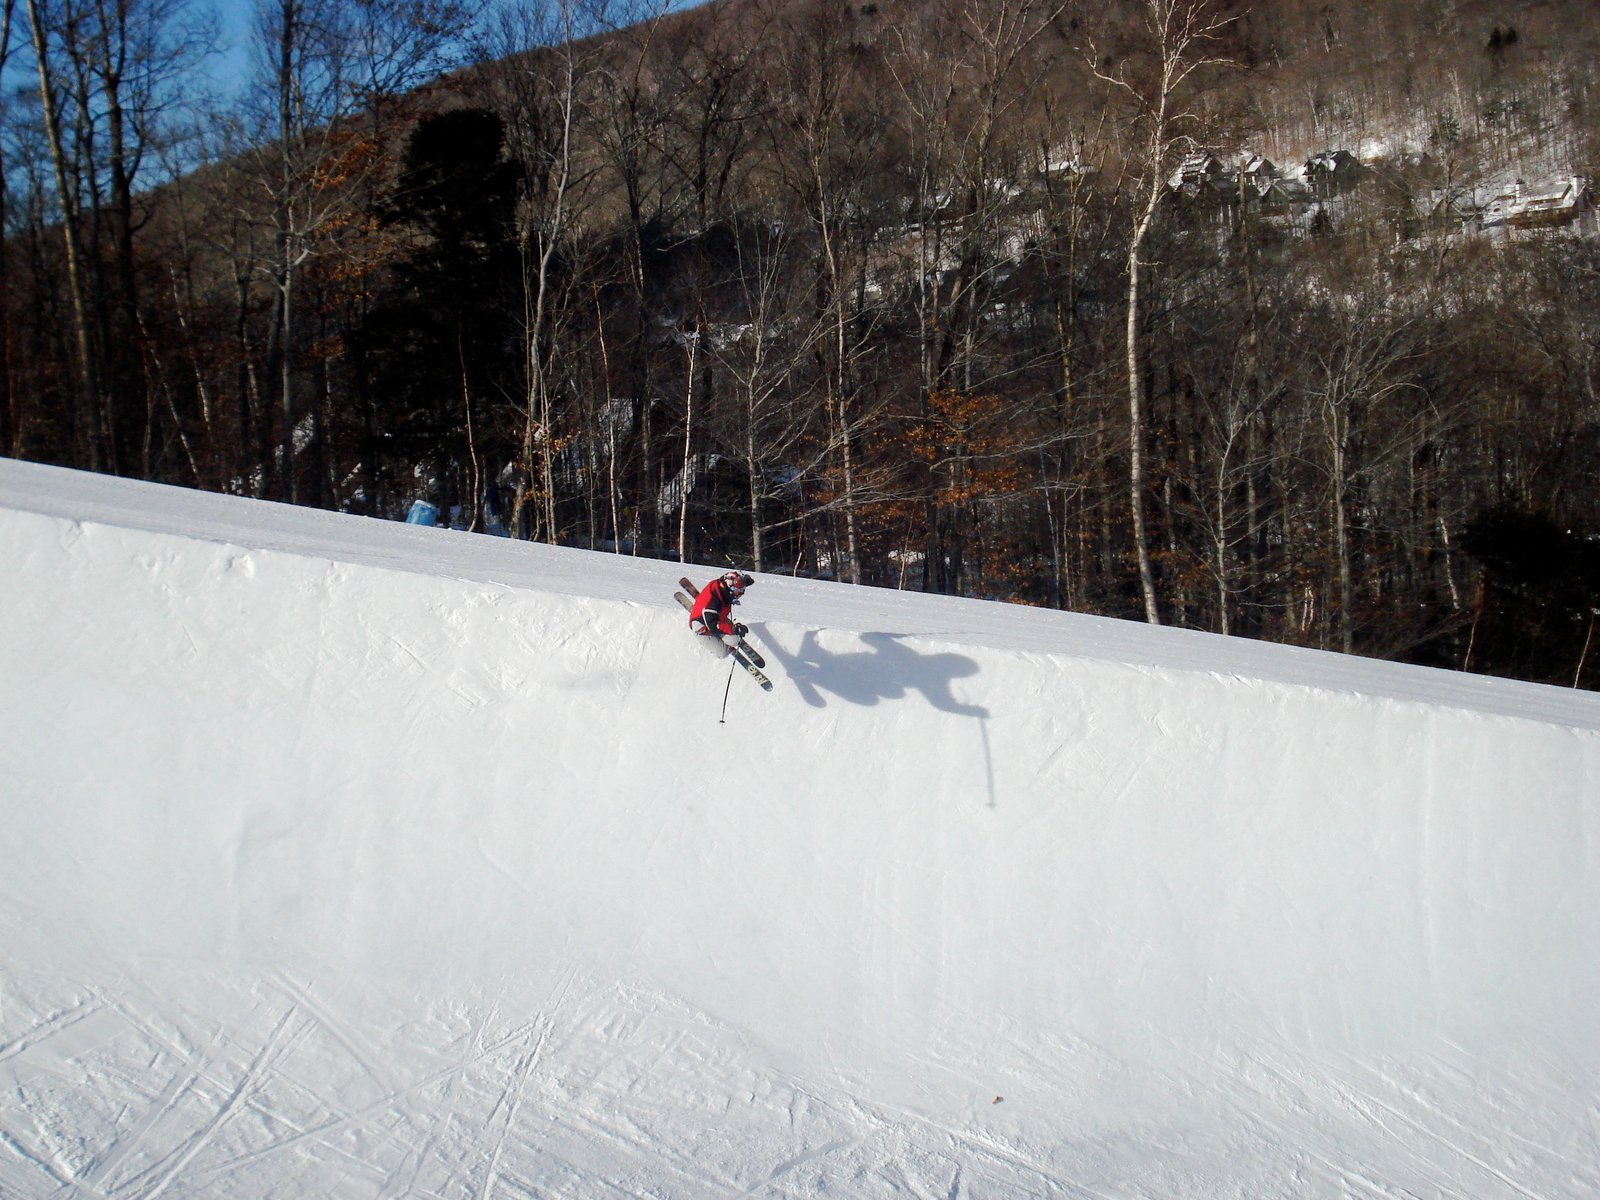 Me in the halfpipe at loon